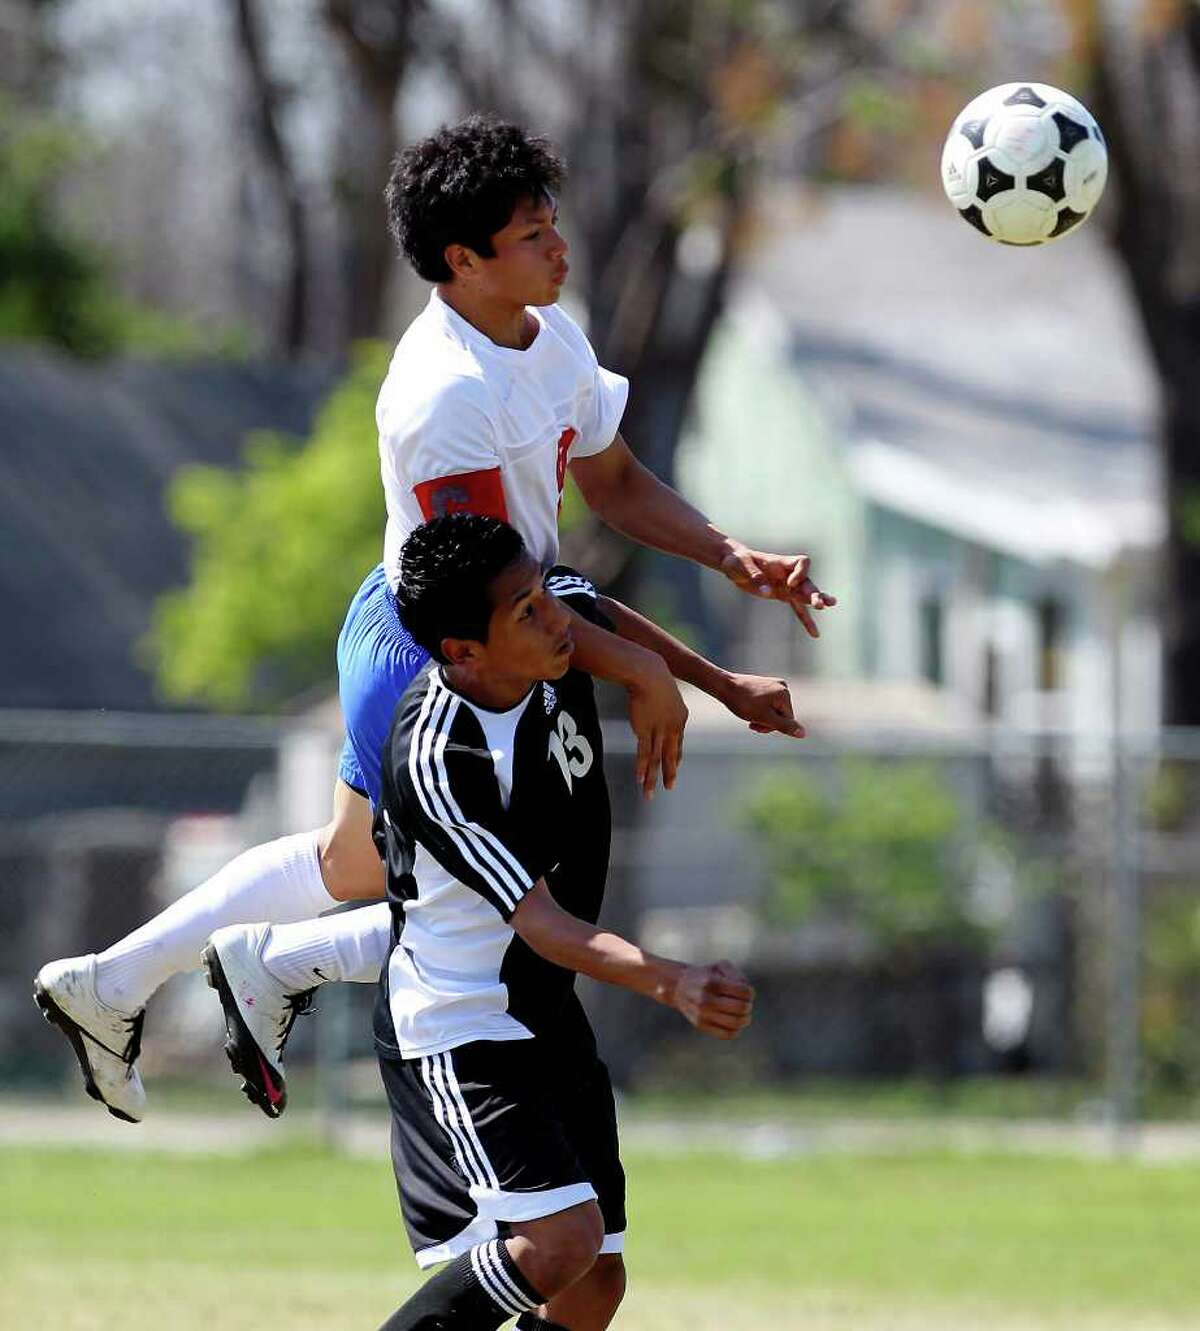 Jefferson's Noe Rodriguez (09) directs a header over Edison's Darren Gonzalez (13) in boys soccer at San Antonio ISD Spring Sports Complex on Tuesday, Mar. 15, 2011. Rodriguez scored two of the three goals as Jefferson defeated Edison, 3-1.